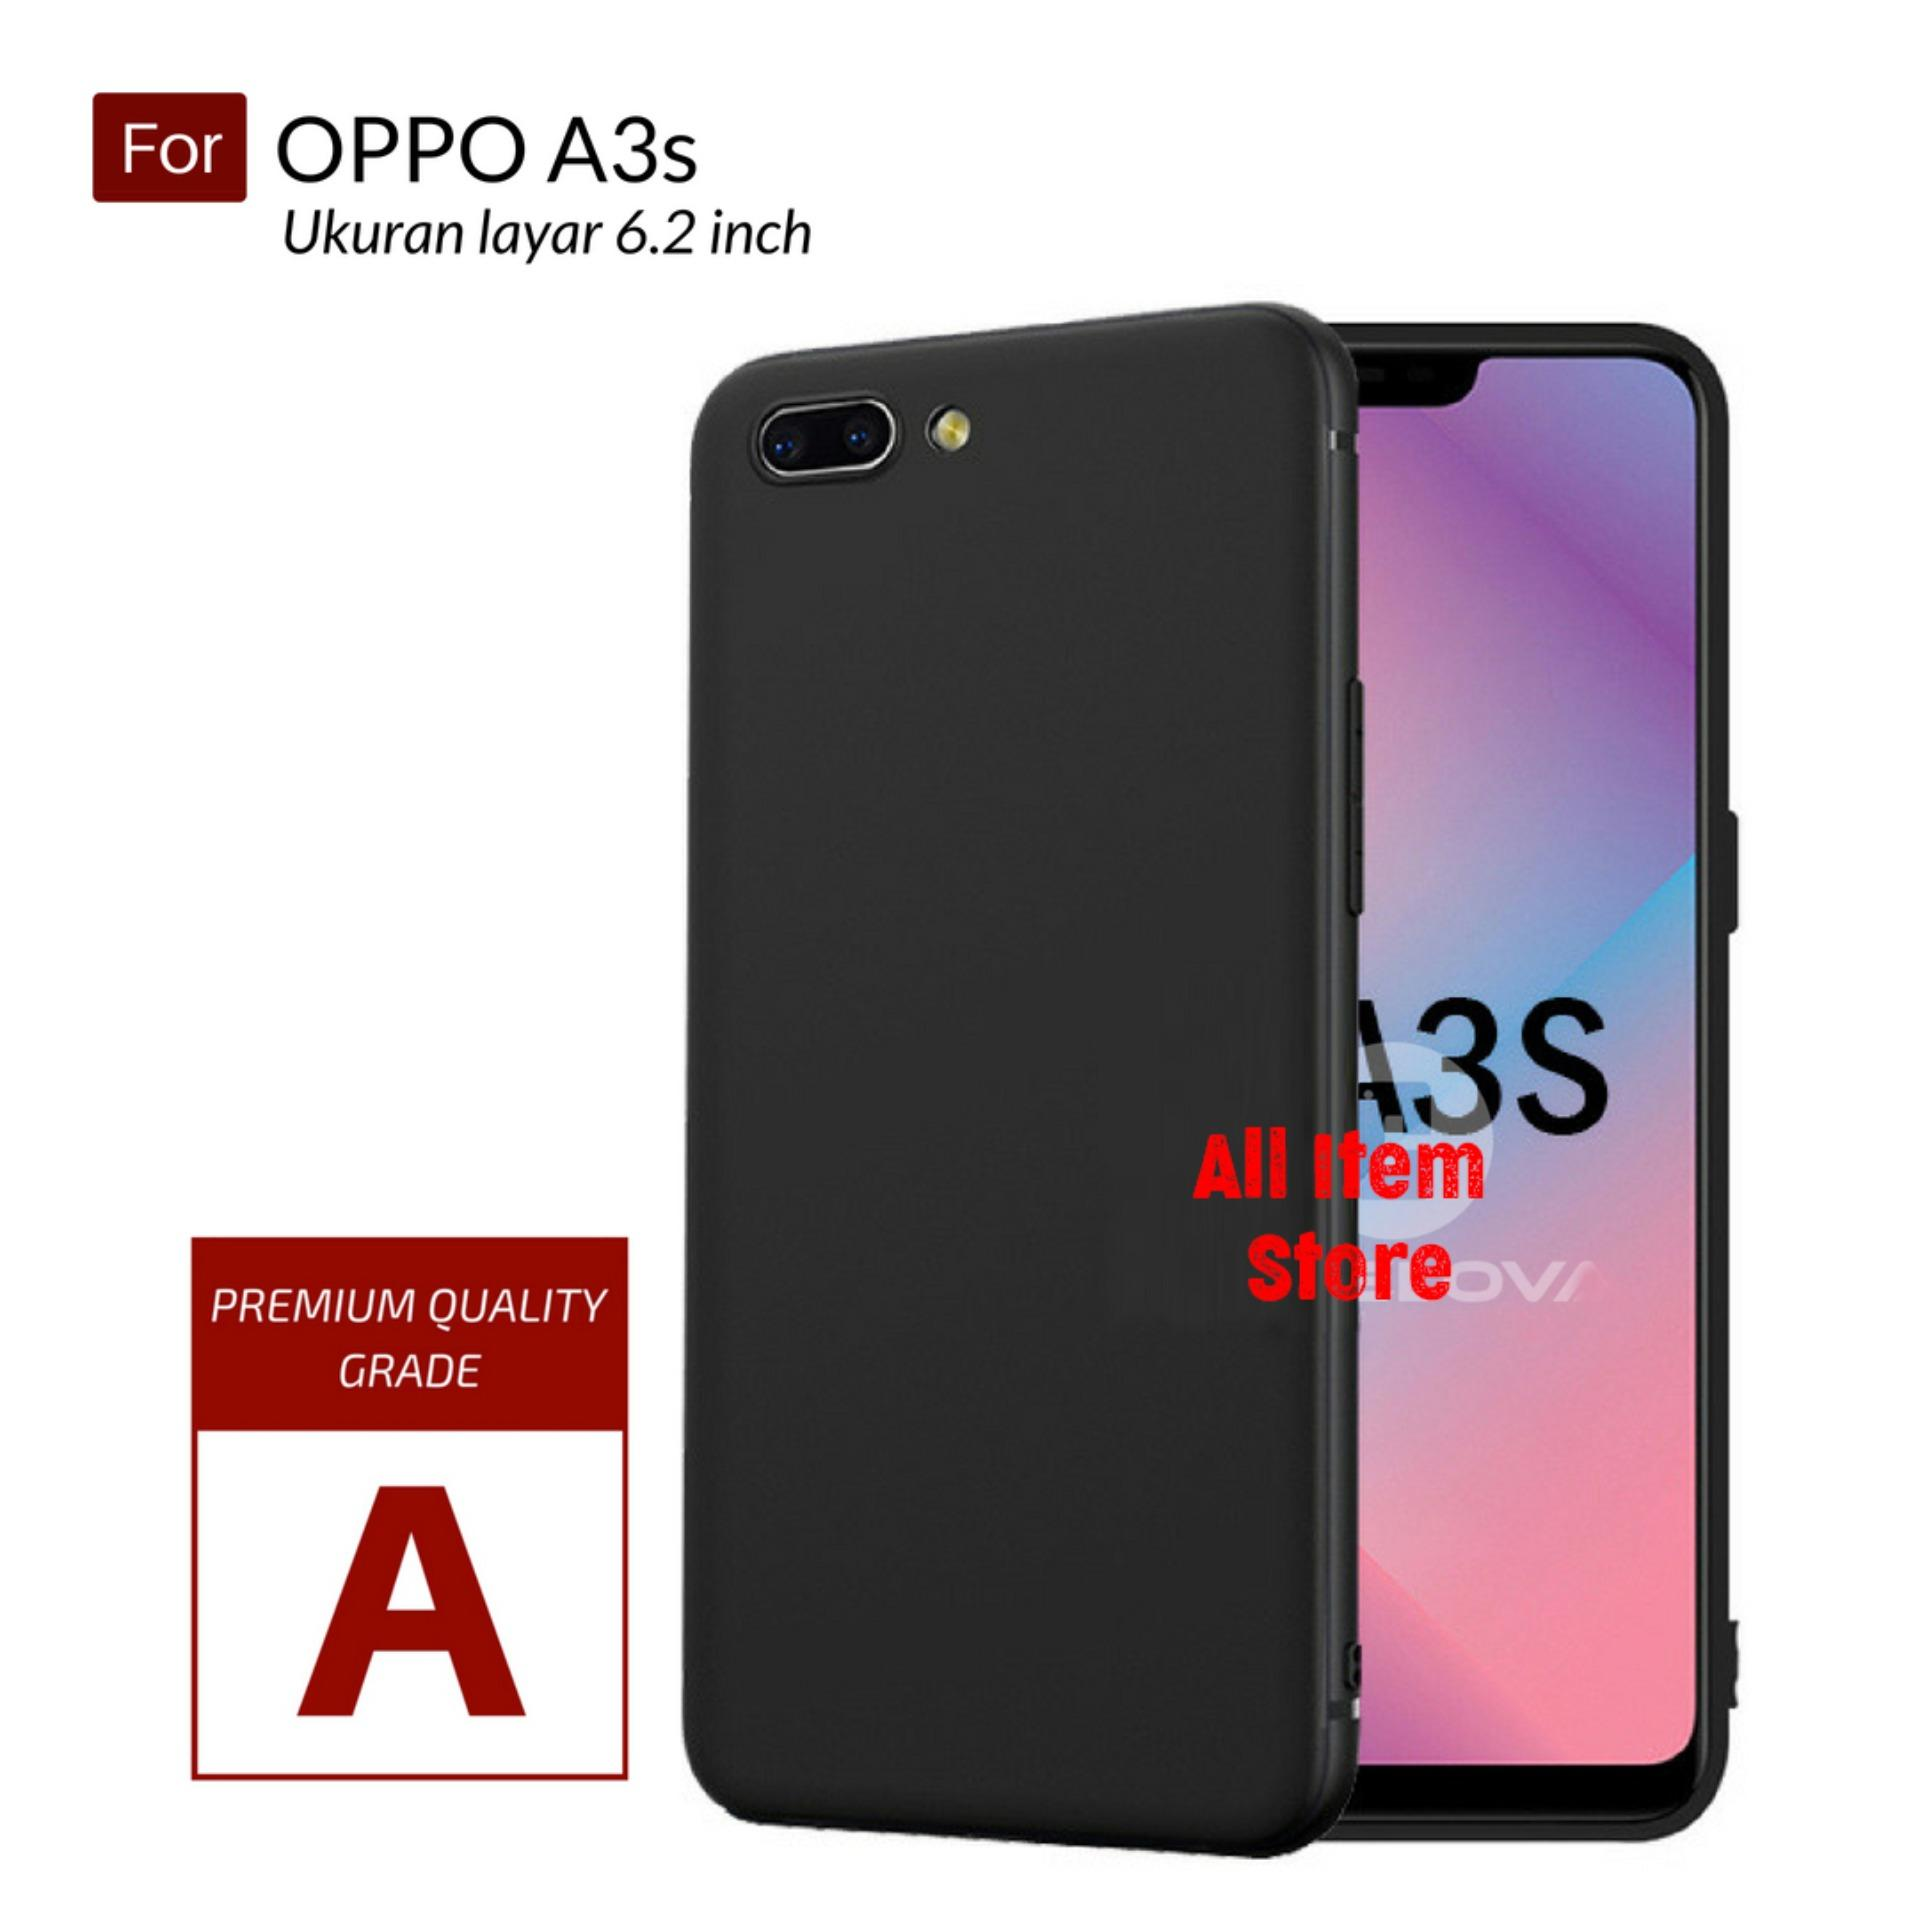 Case Slim Black Oppo A3S Dual Camera Baby Skin Softcase Ultra Thin Jelly Silikon Babyskin - Hitam